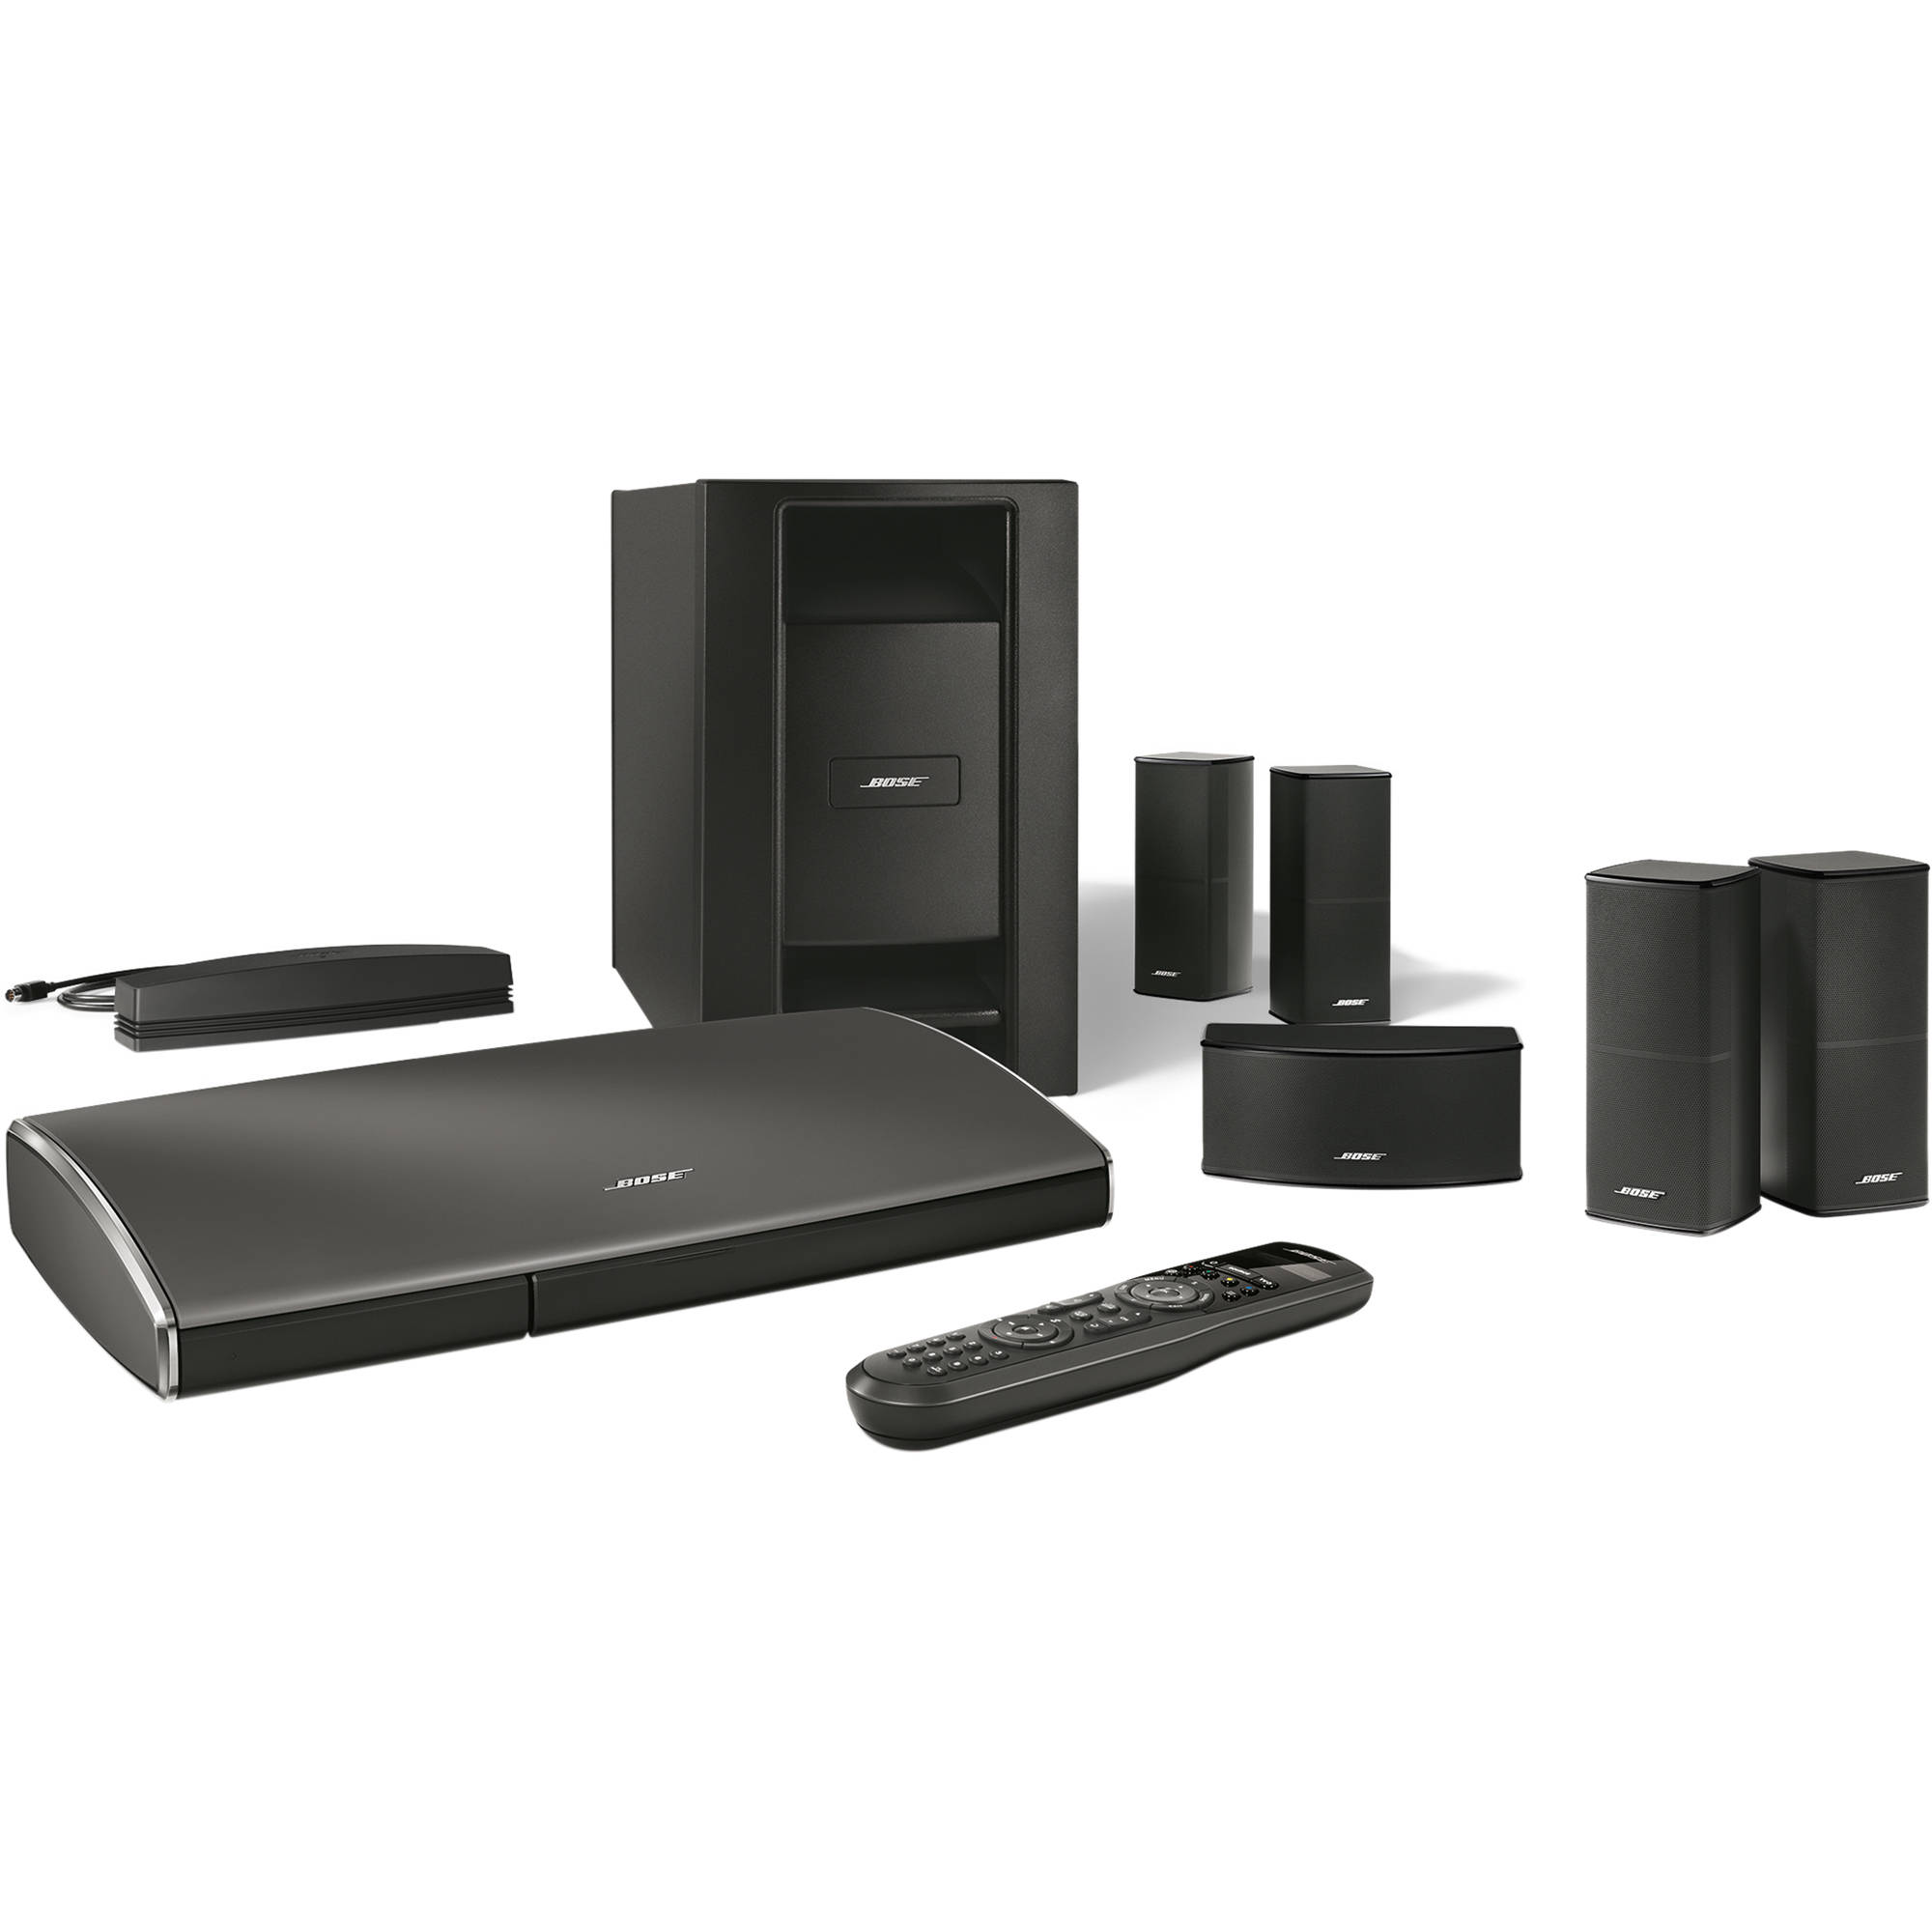 bose lifestyle soundtouch 535 entertainment system 738516 1100. Black Bedroom Furniture Sets. Home Design Ideas